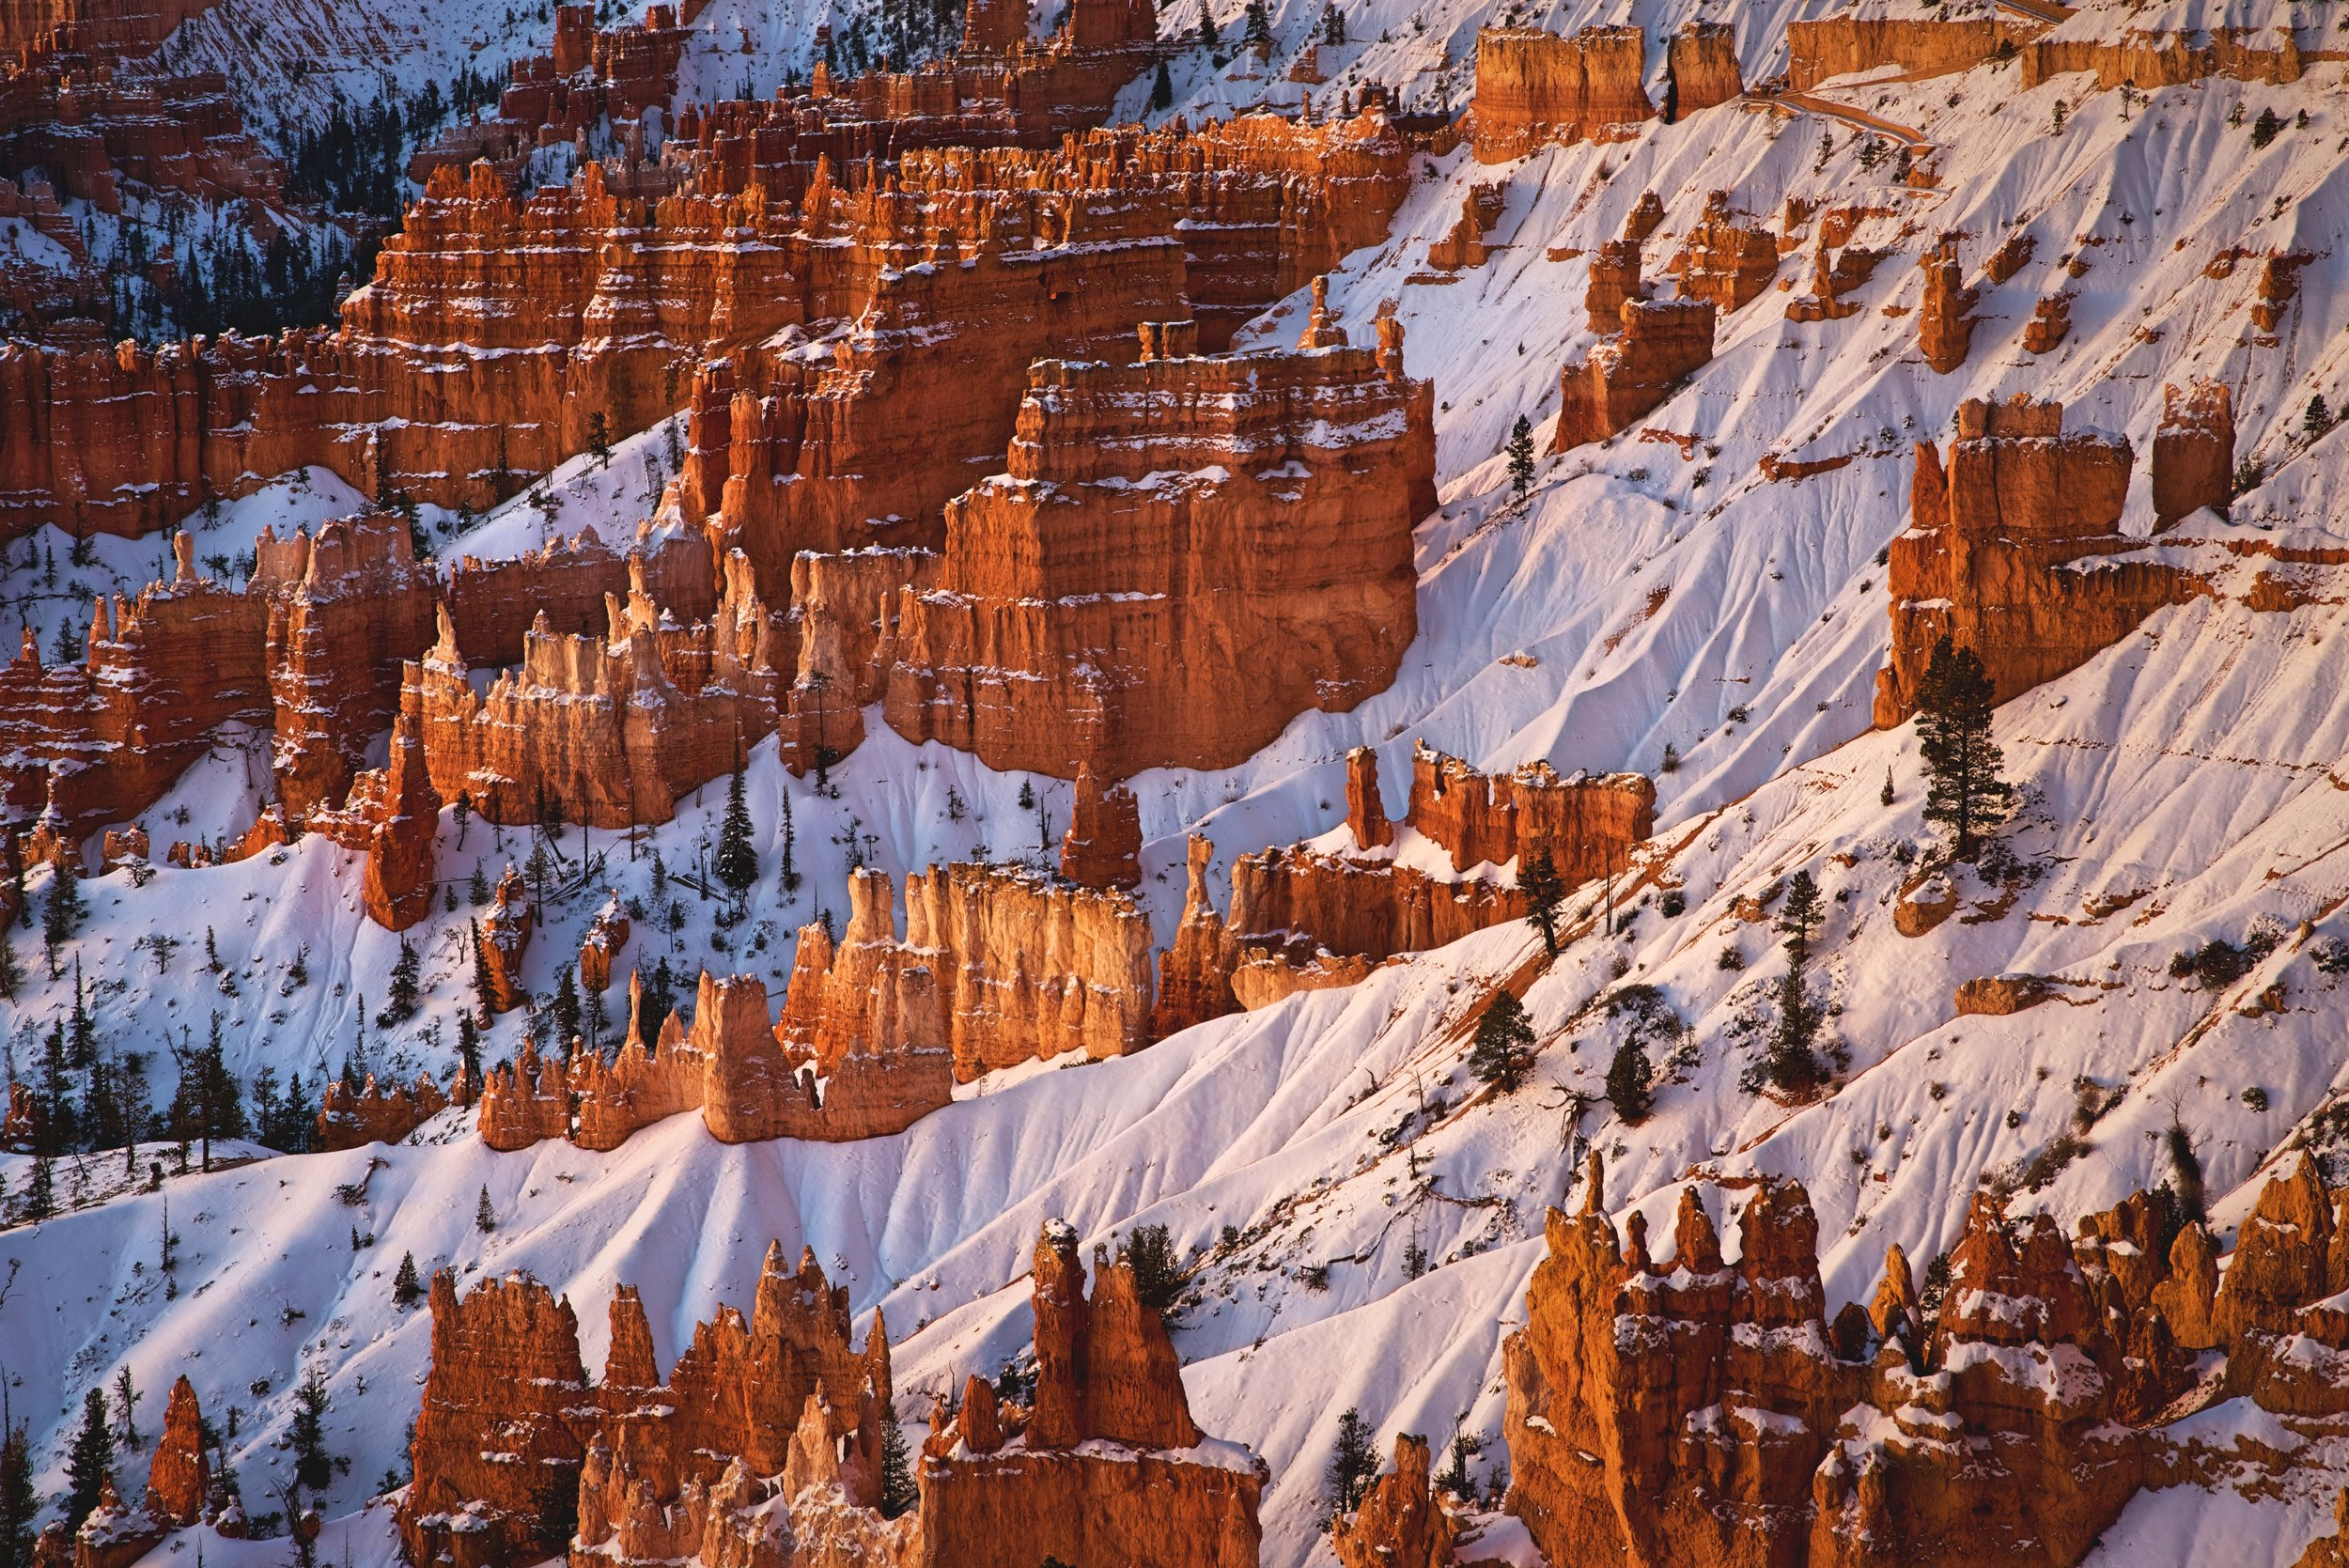 Because Bryce Amphitheater faces east, sunrise is one of the best times to view the hoodoos of Bryce Canyon National Park.